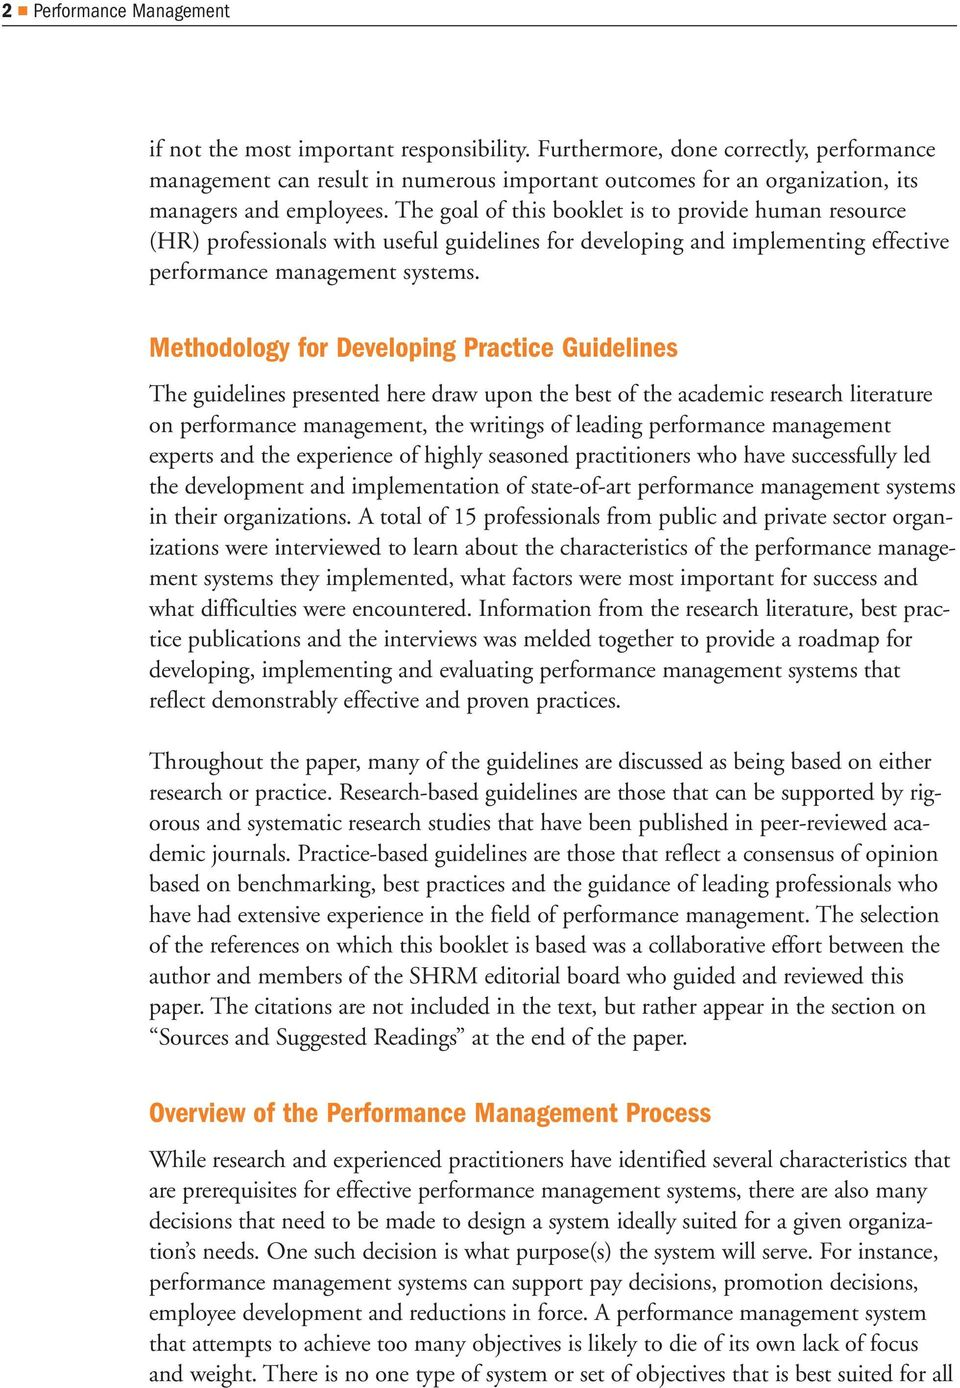 The goal of this booklet is to provide human resource (HR) professionals with useful guidelines for developing and implementing effective performance management systems.